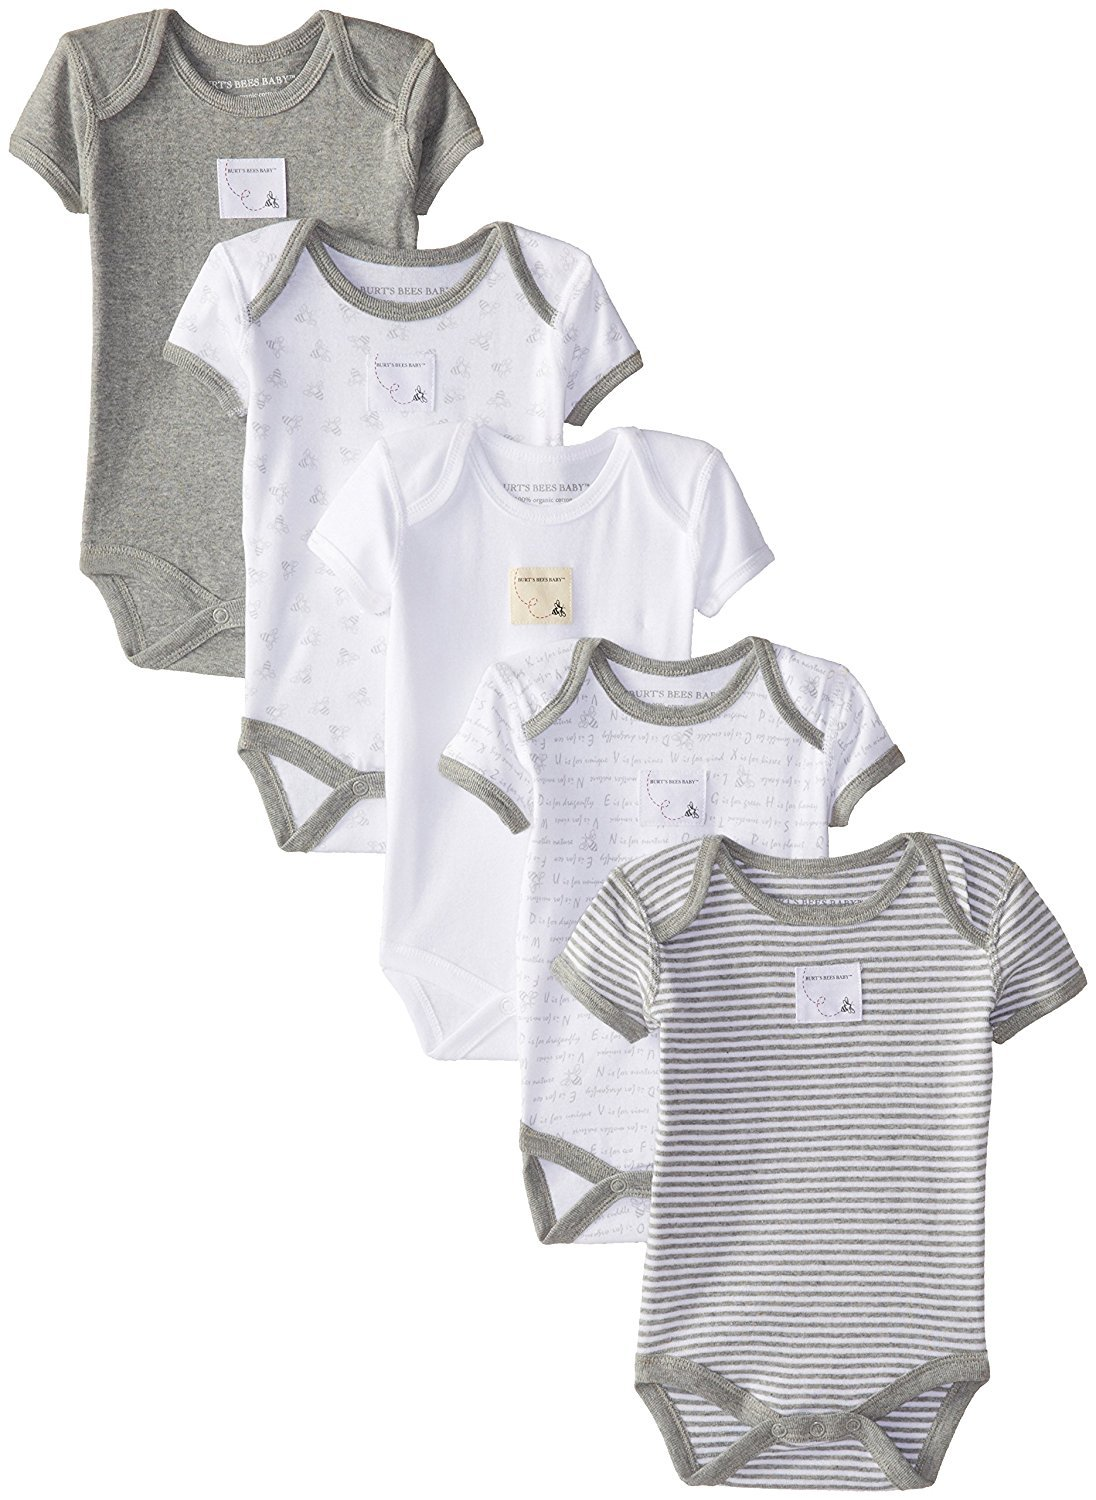 Burt's Bees Baby - Set of 5 Bee Essentials Short Sleeve Bodysuits, 100% Organic Cotton, Heather Grey Prints (3-6 Months)